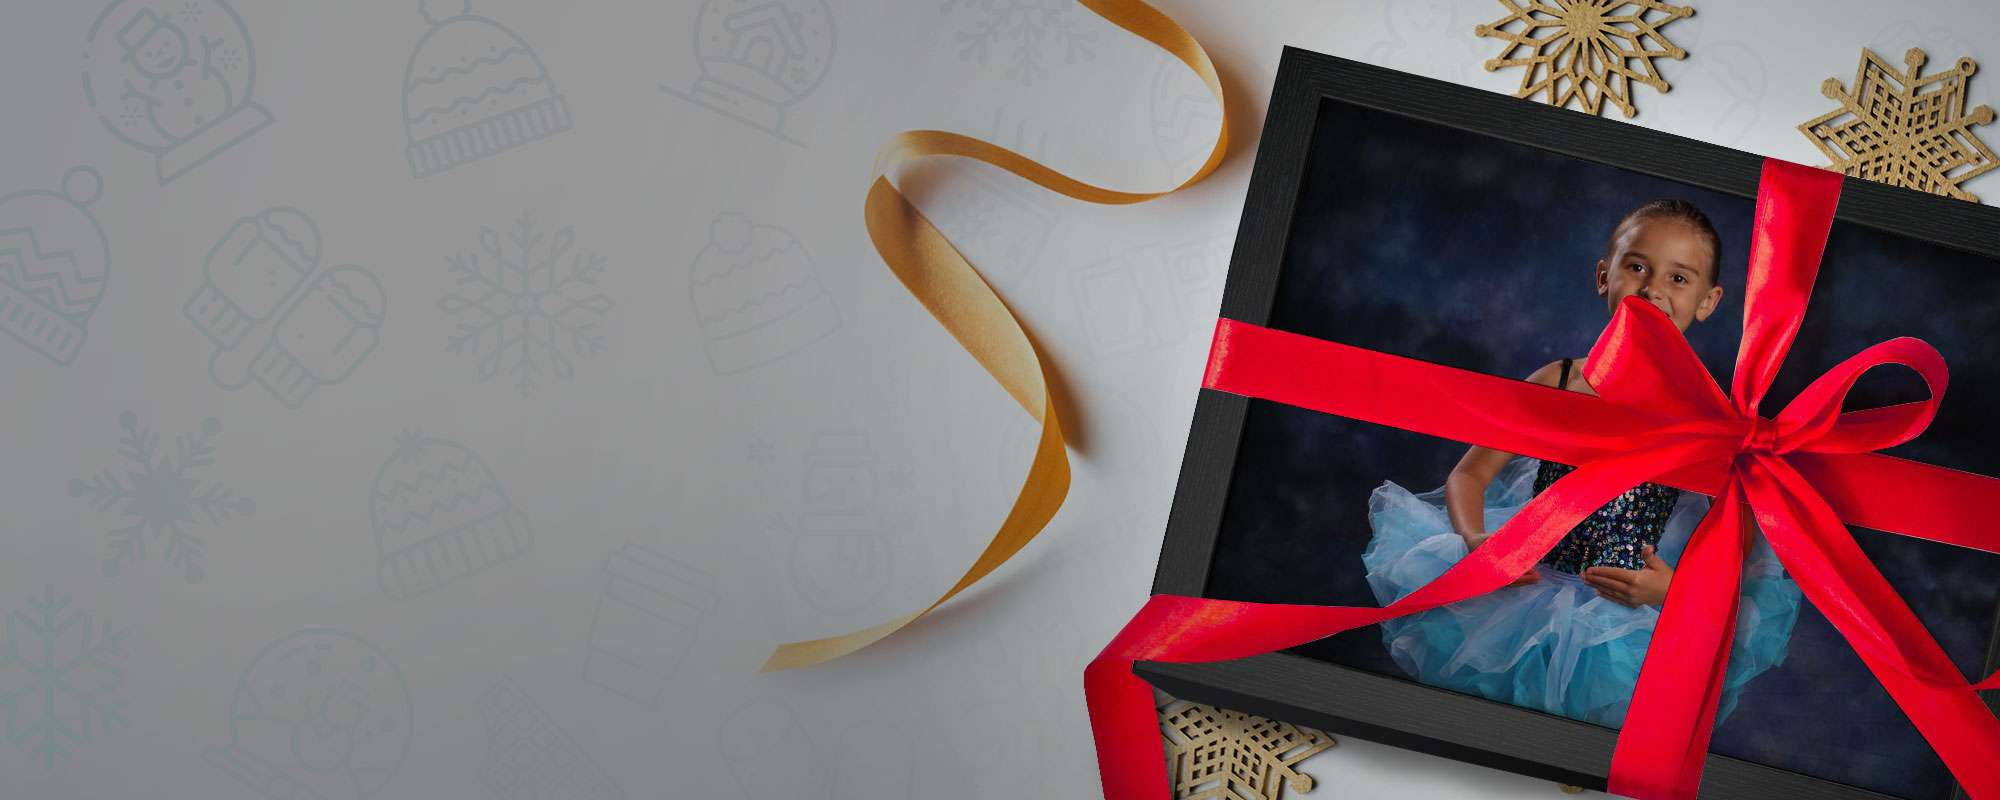 Holiday Photo Gifts…Sales that Keep on Giving